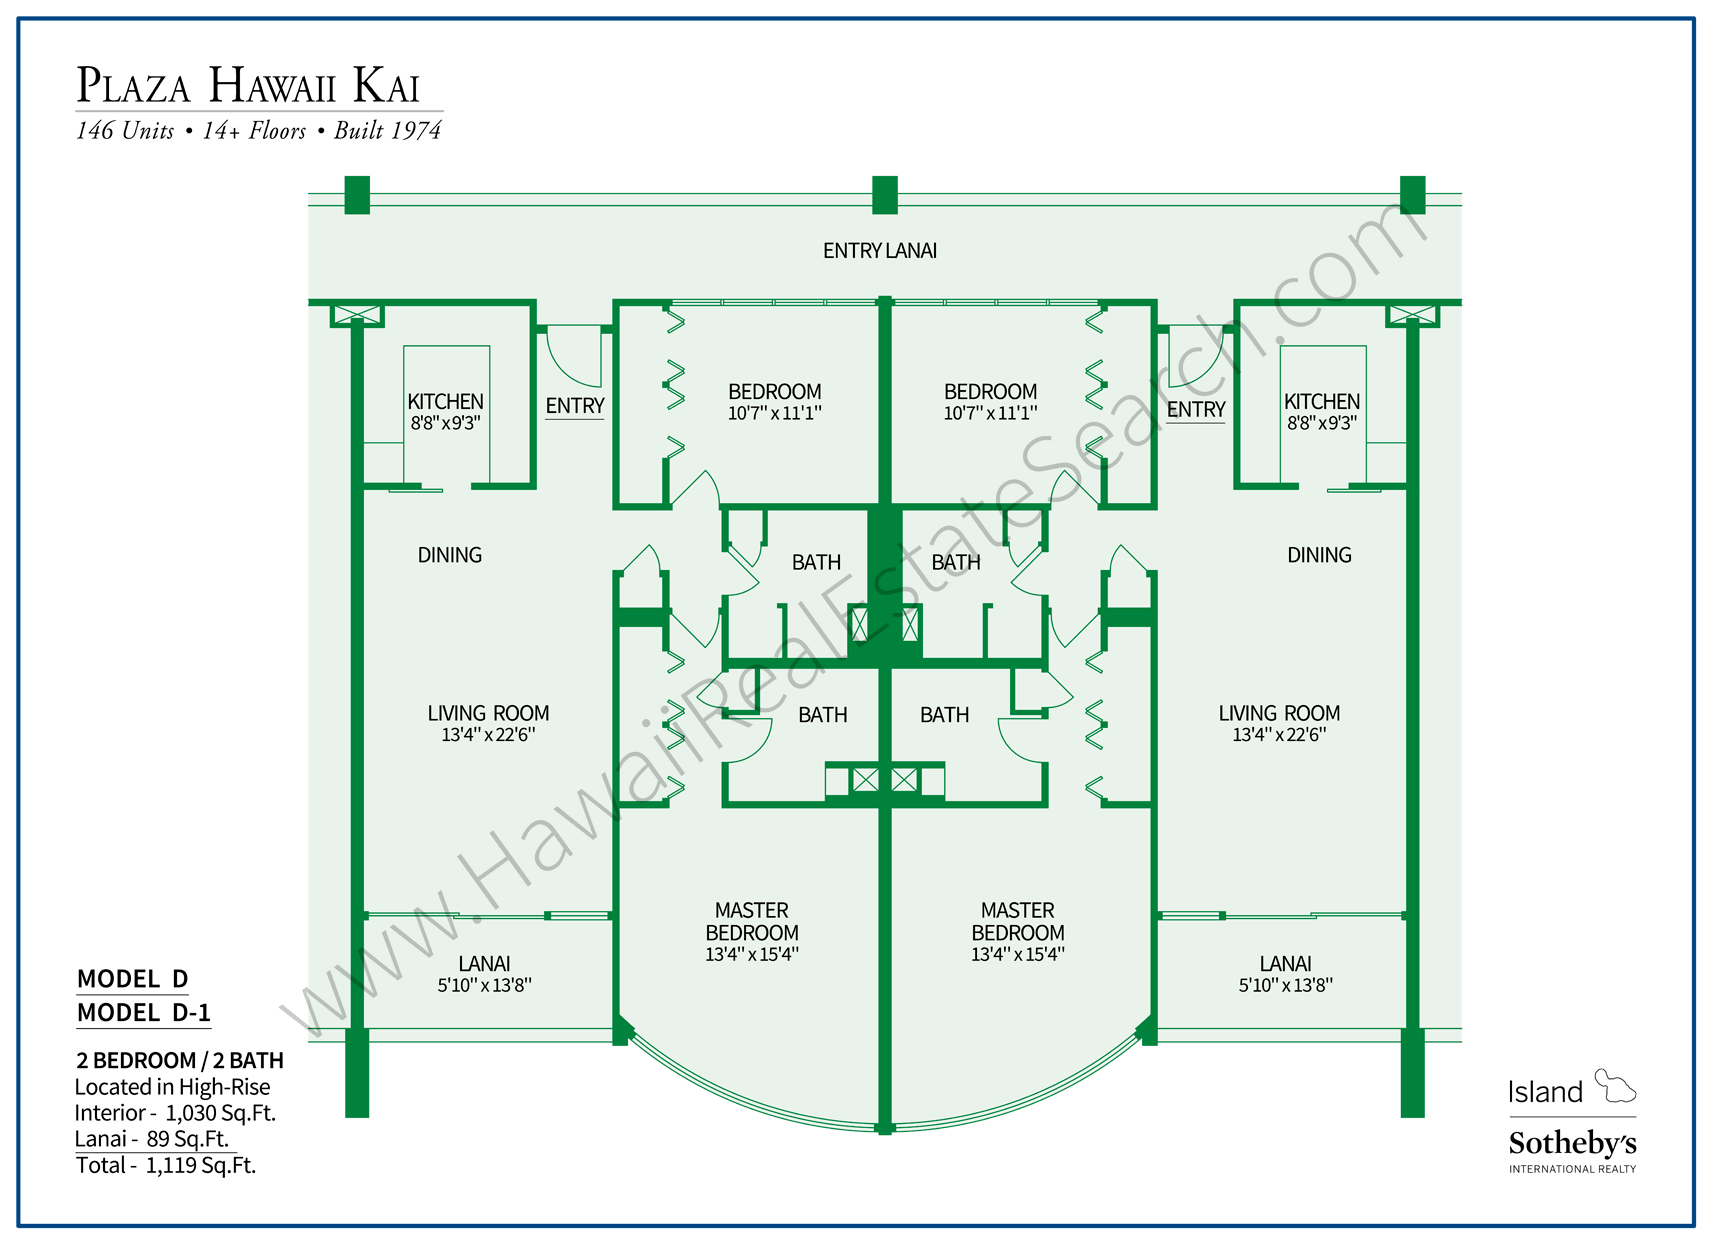 Plaza Hawaii Kai Floor Plan D